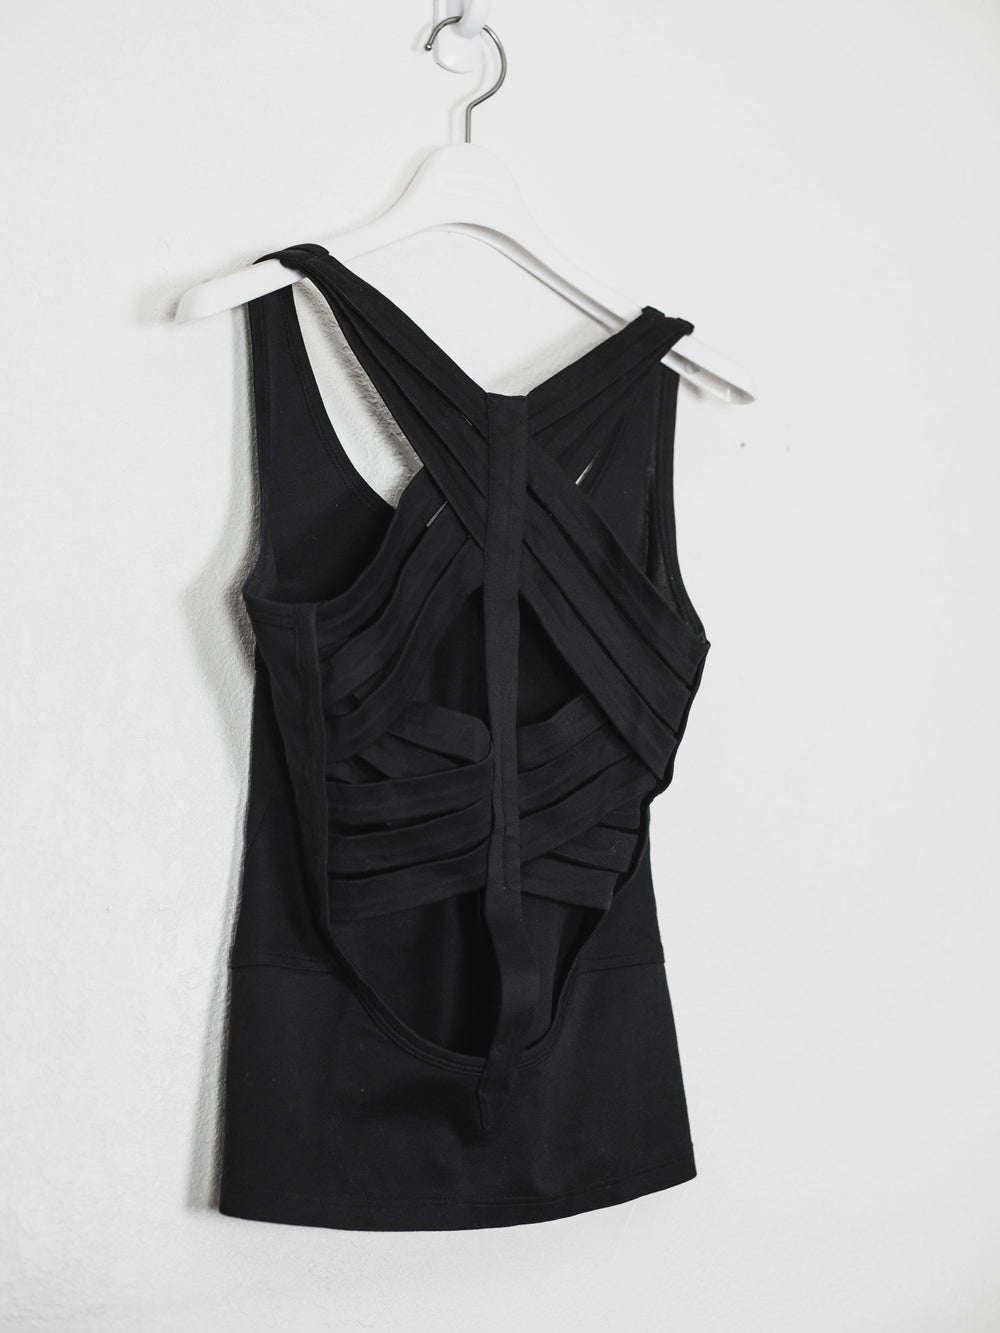 Helmut Lang SS01 Cross Strap Bound Top Sample